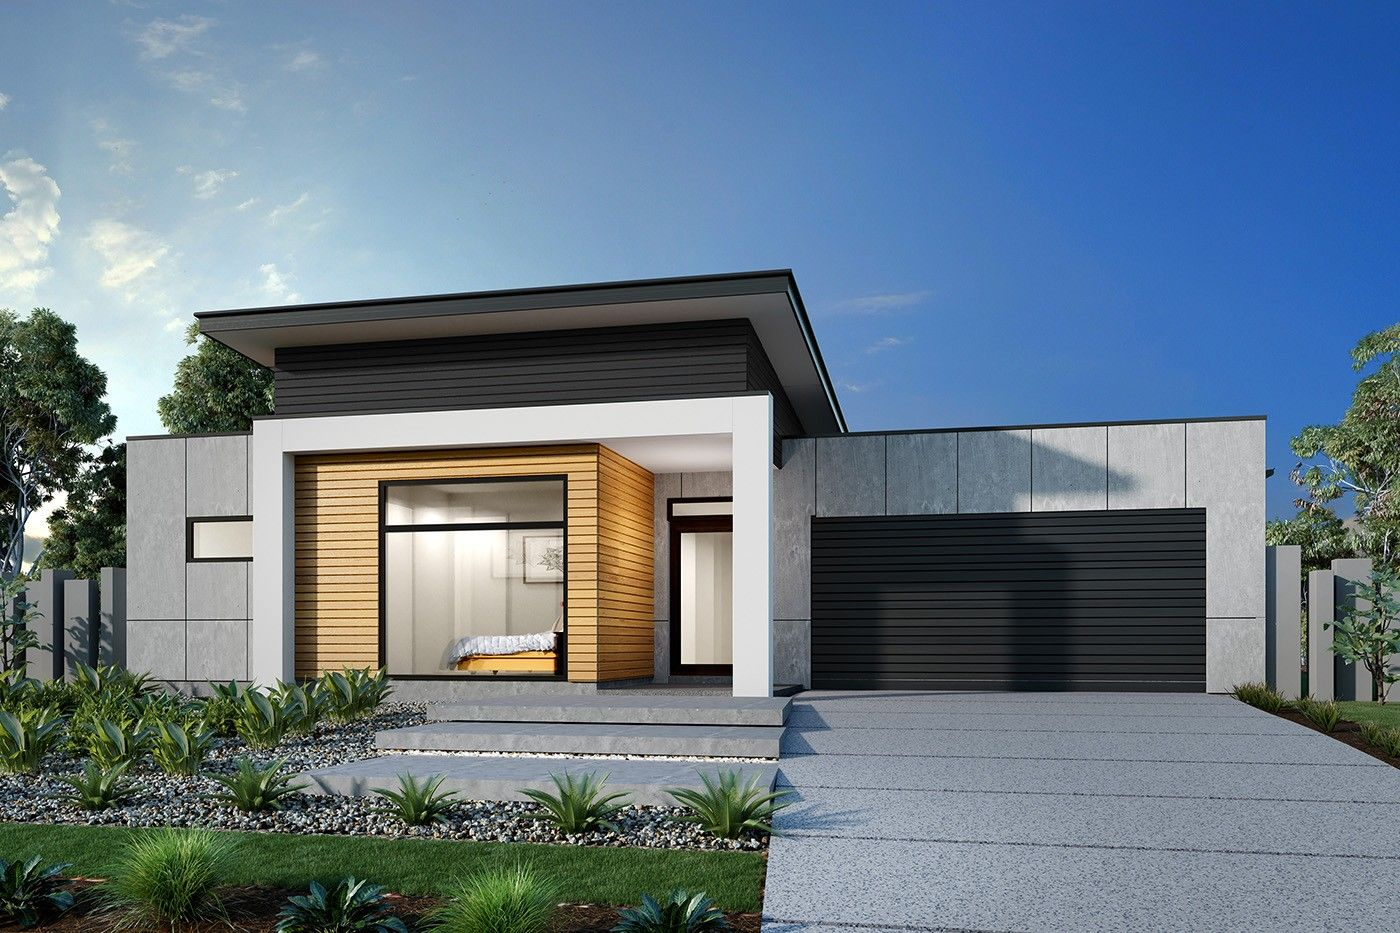 Lot 71, 390 Deering Place, Innes Park QLD 4670, Image 0